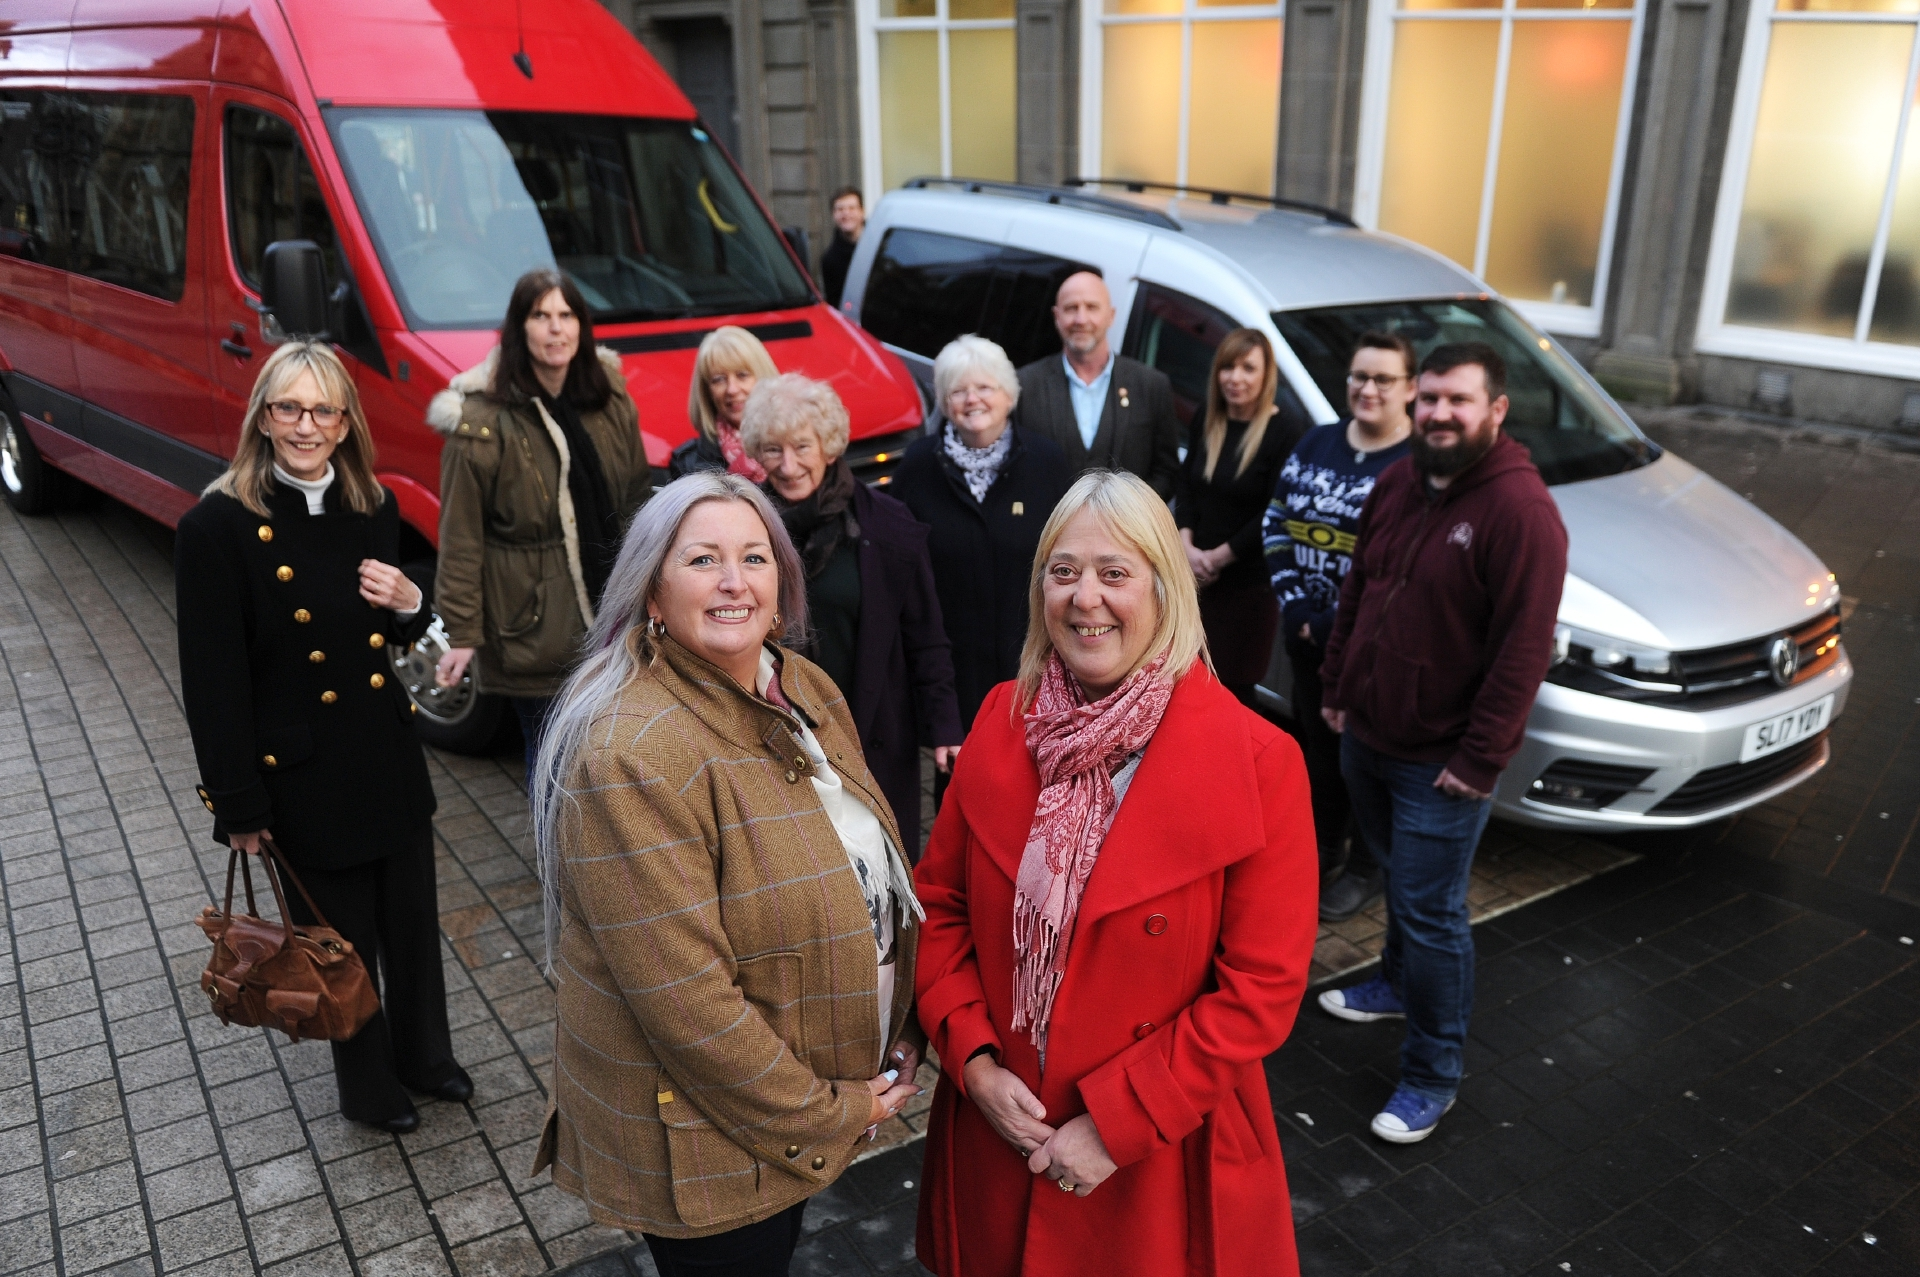 Staff, volunteers and members of the Inclusion Group with the new vehicles donated by Gillian Bayford. Centre L-R Gillan Bayford and Inclusion Group manager Fiona Flynn.